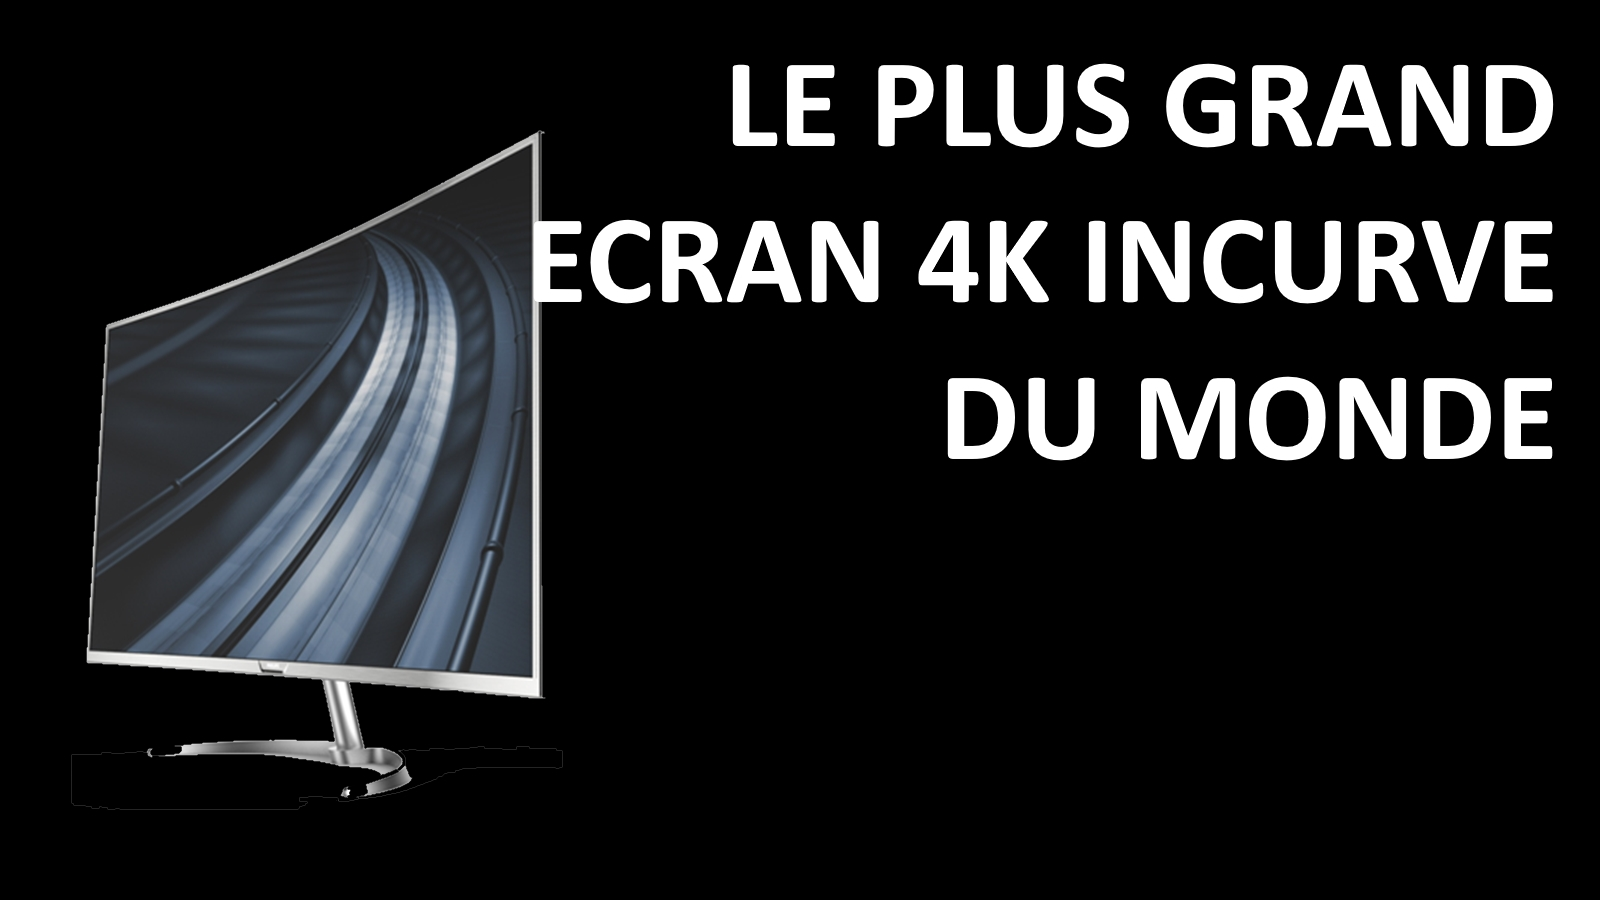 Philips Le plus grand écran 4K incurvé du monde